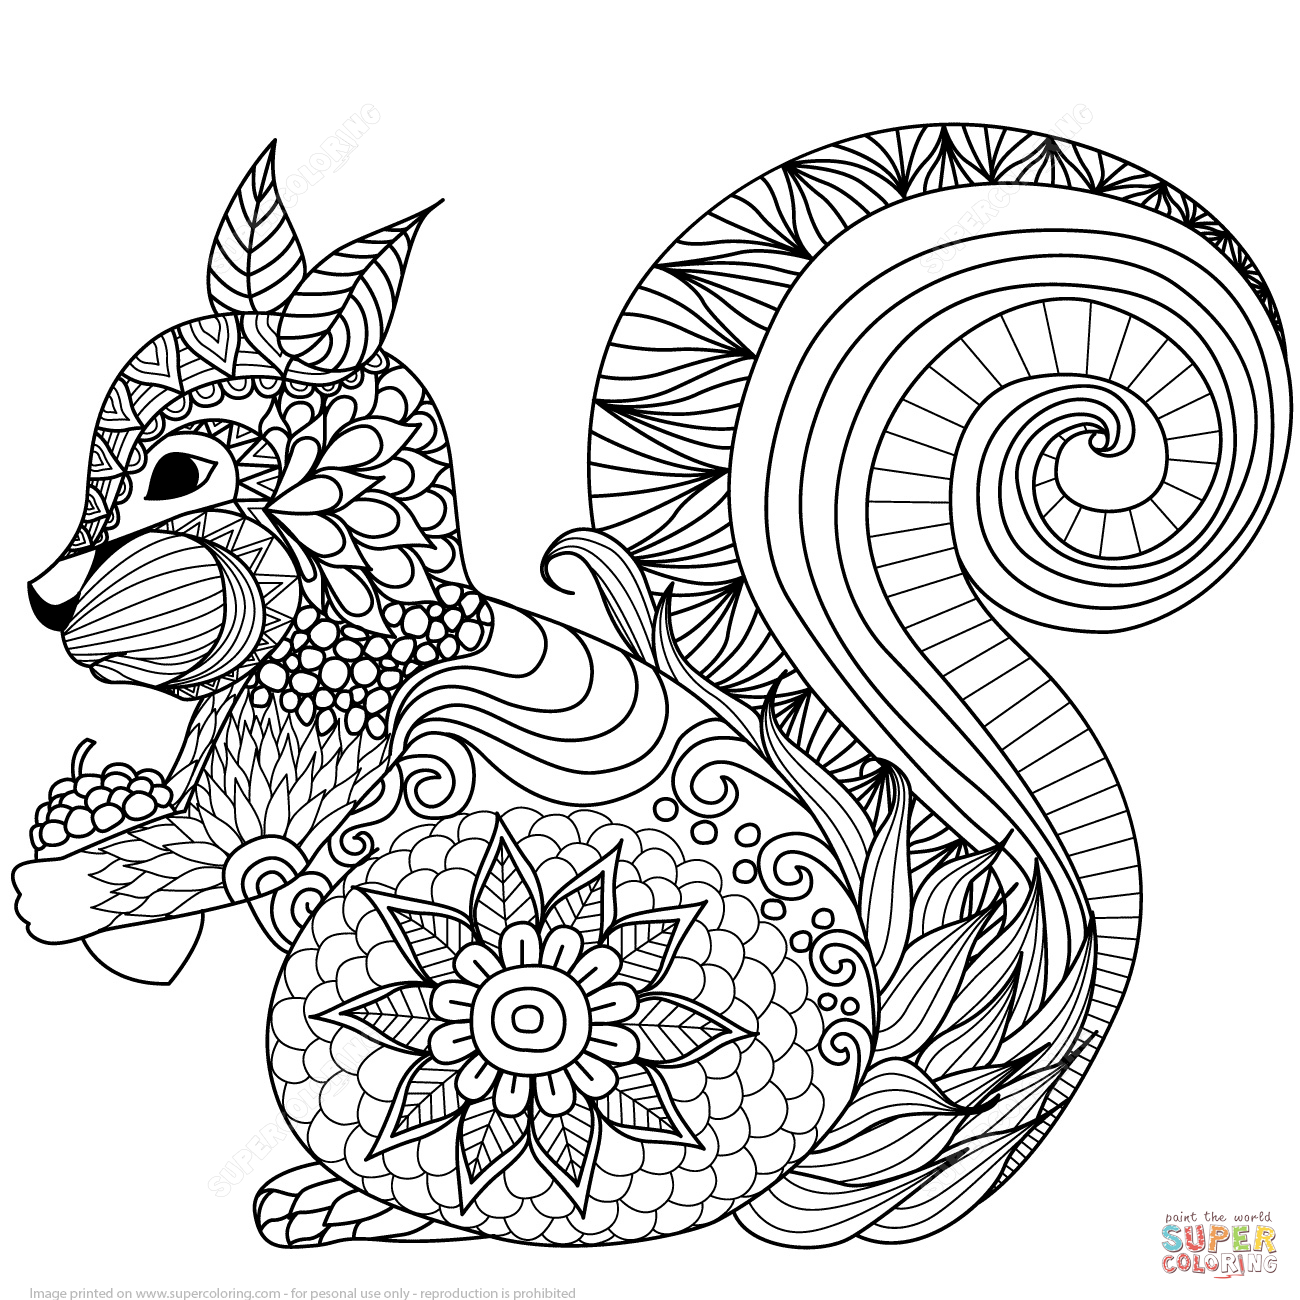 Zen coloring #2, Download drawings